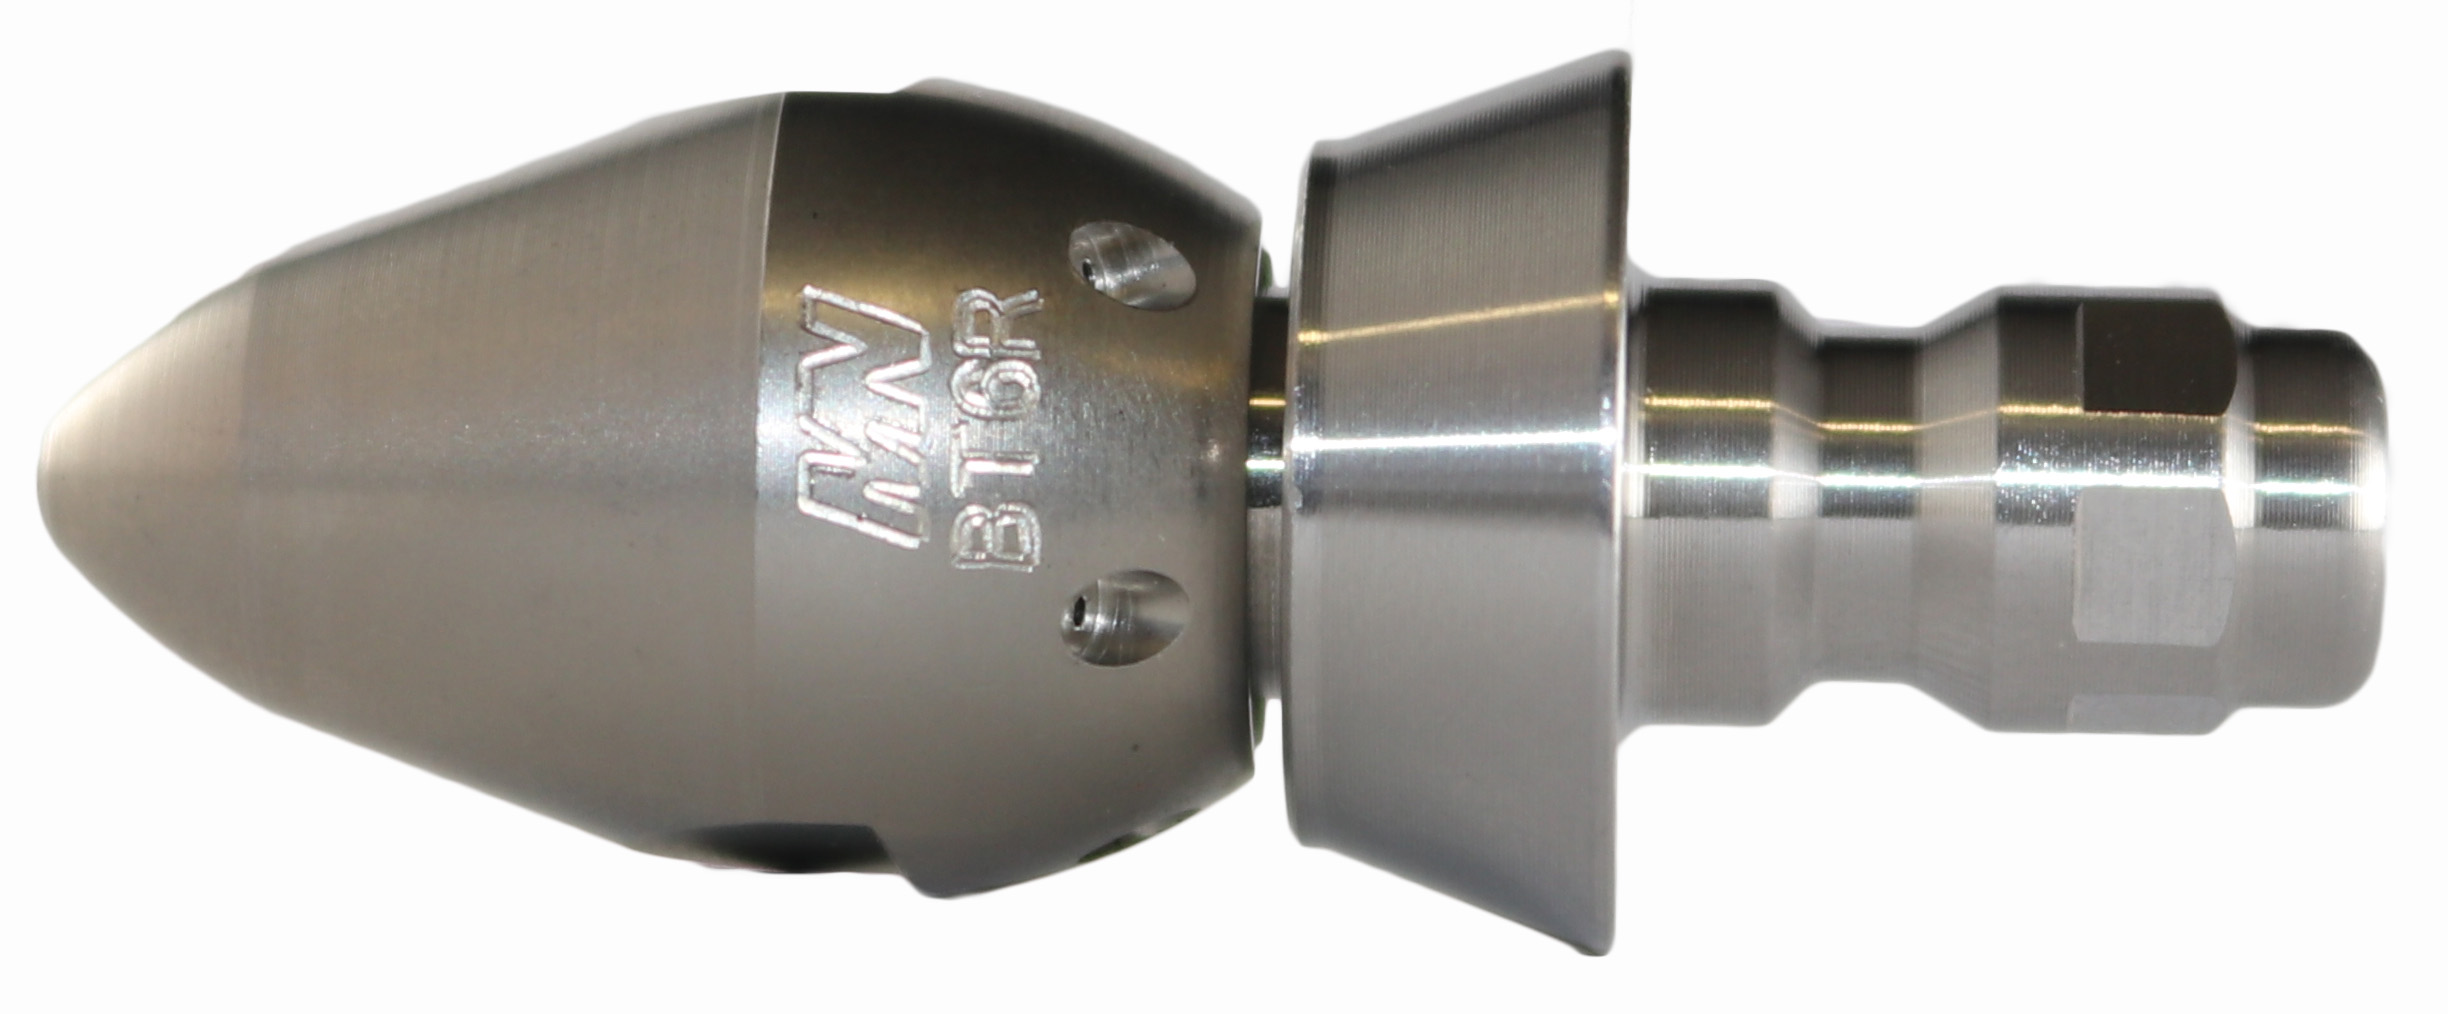 "Bandit Thruster Nozzle with SS Quick Connect Nozzle Adaptor with 1/4"" Cone"